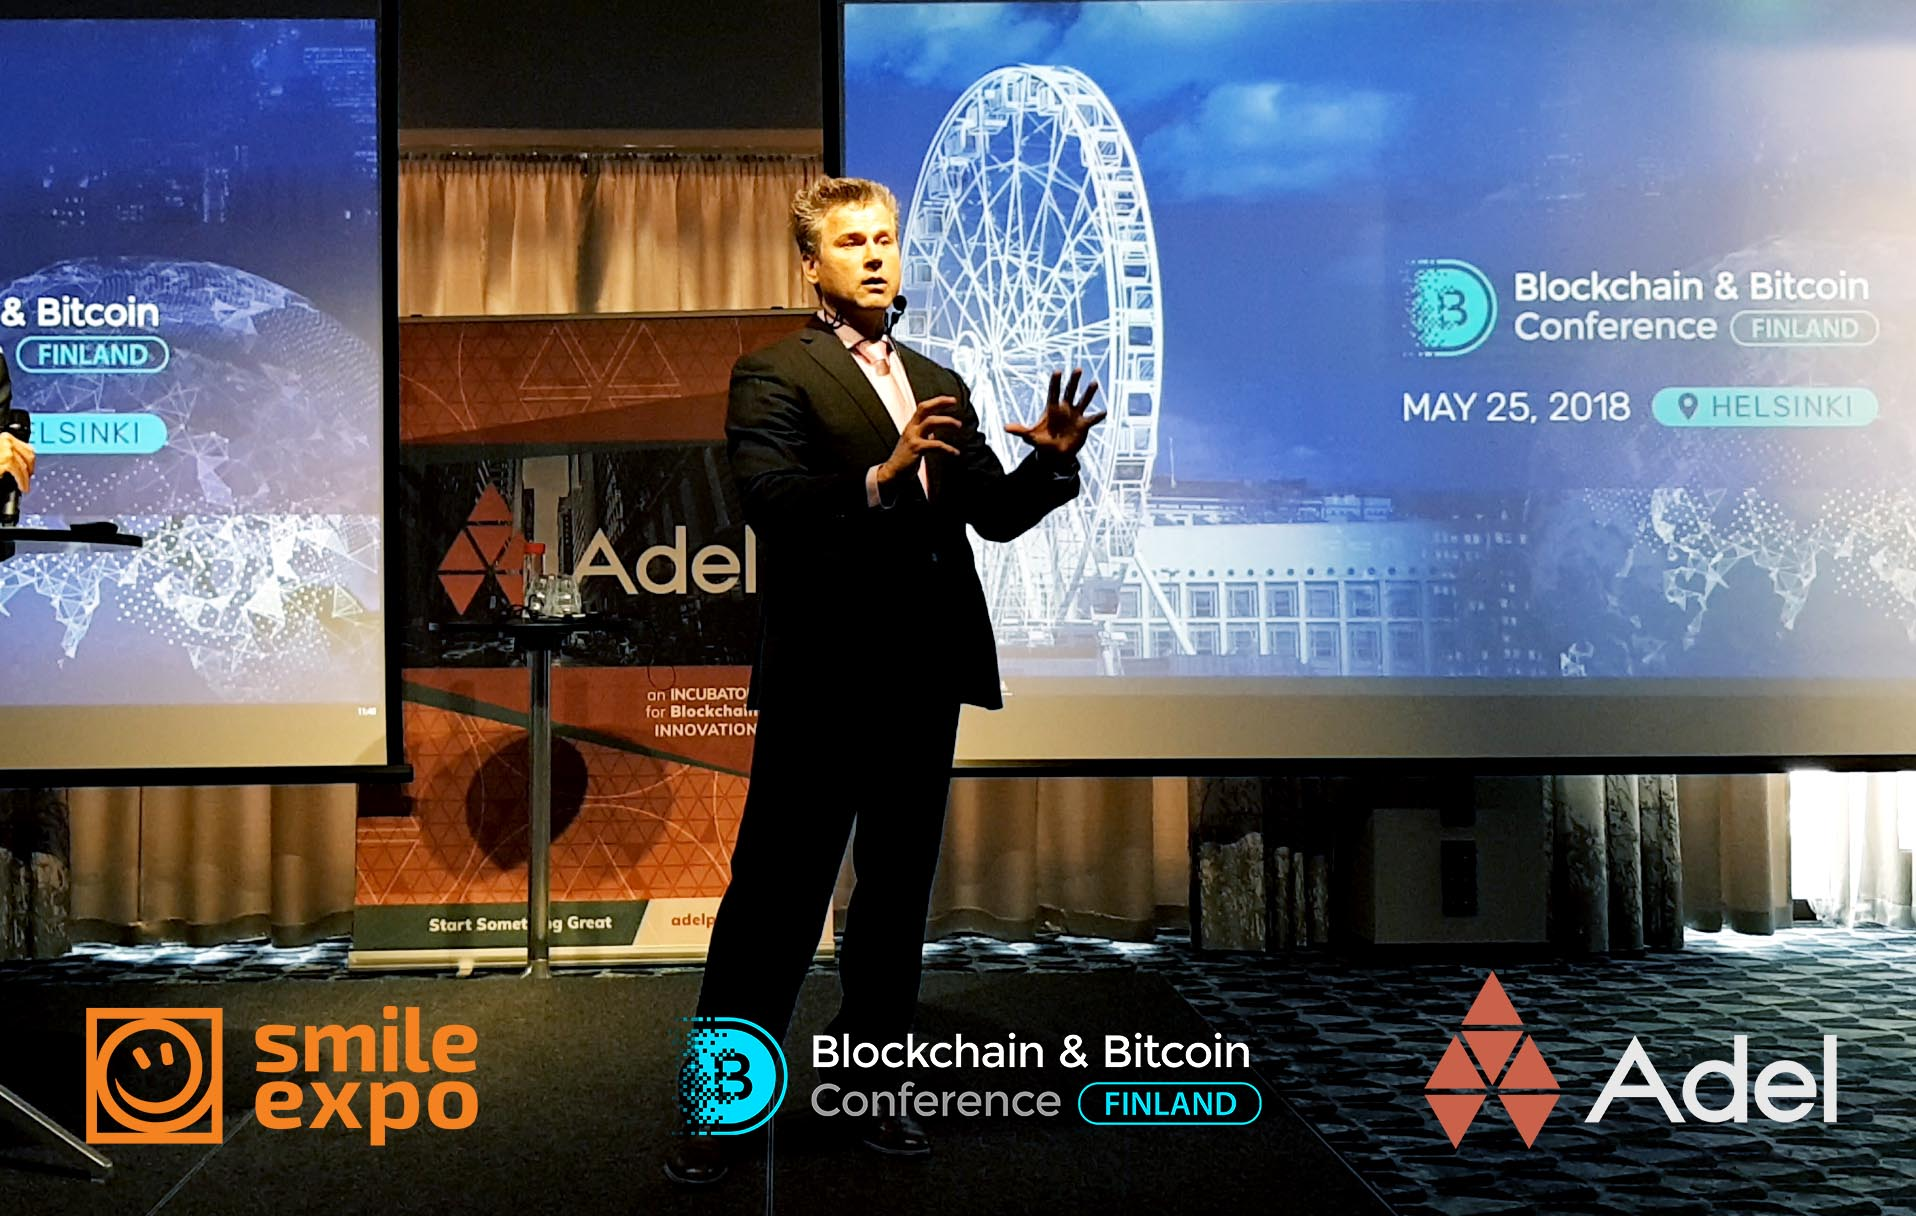 Adel ▲ Conference ▲ Will Pandemic Protocols Establish a Utopian Economy? ▲ Helsinki